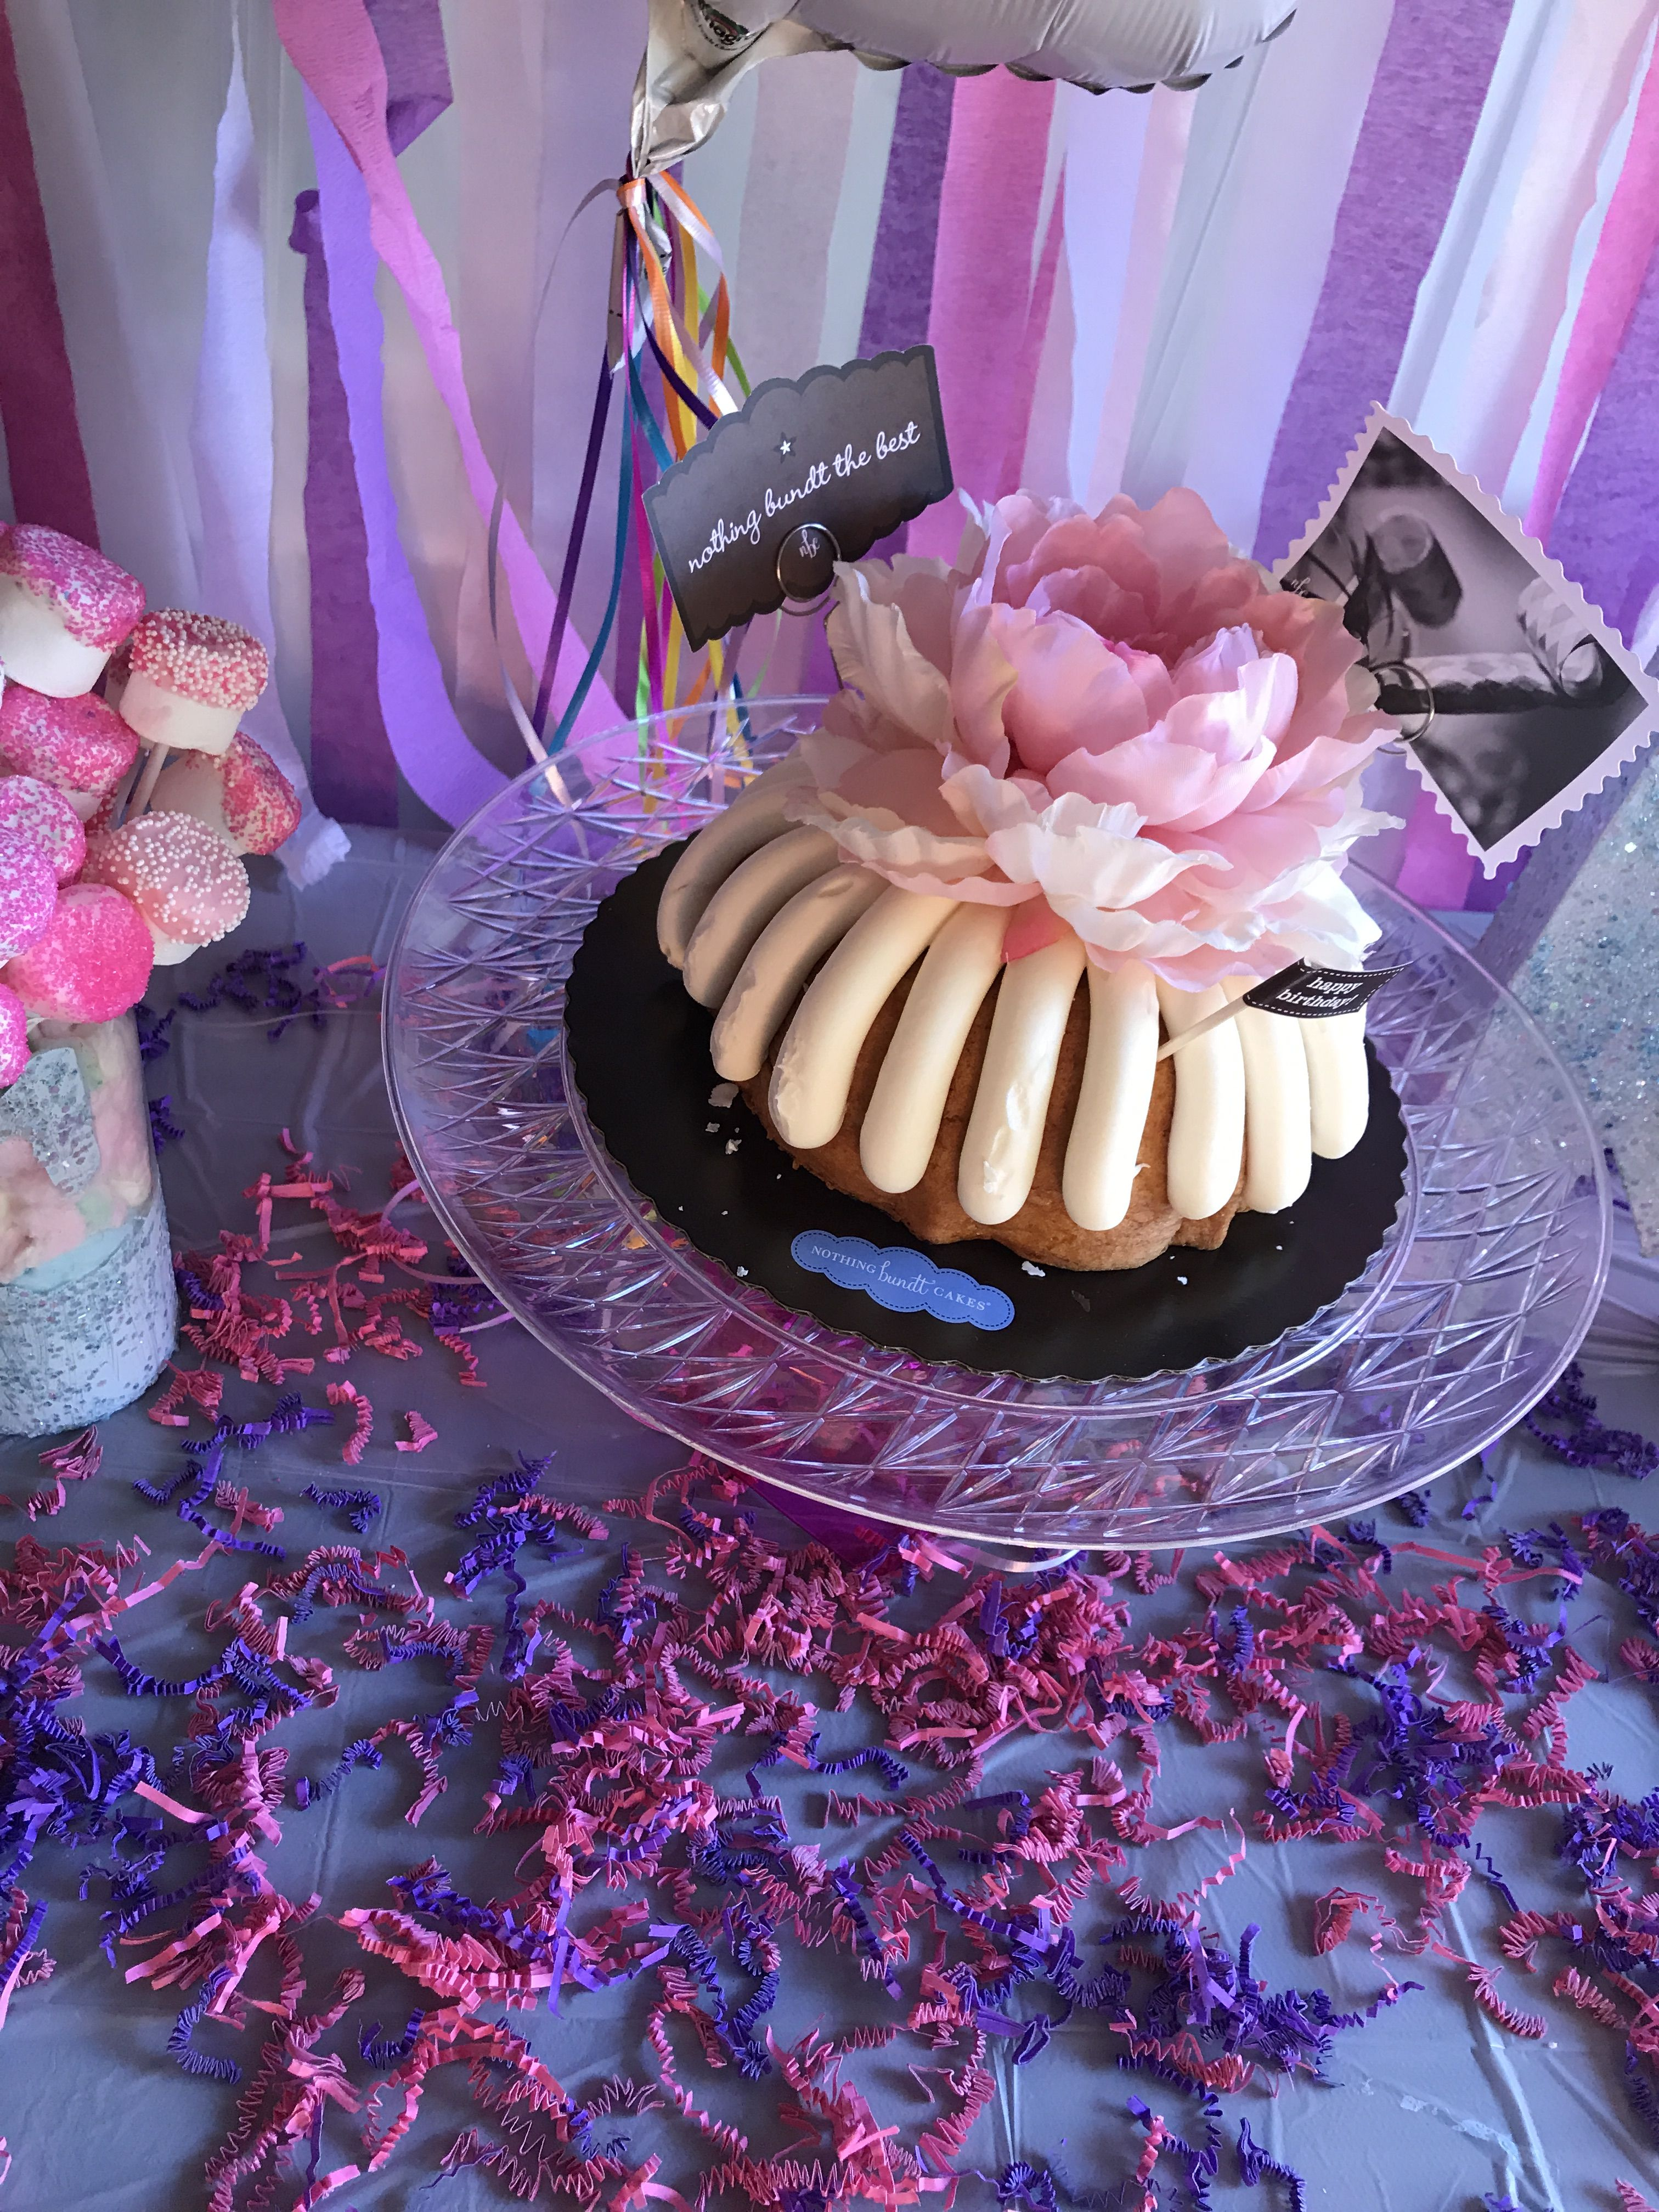 Bundt cake you need to try my favorite flavor is white